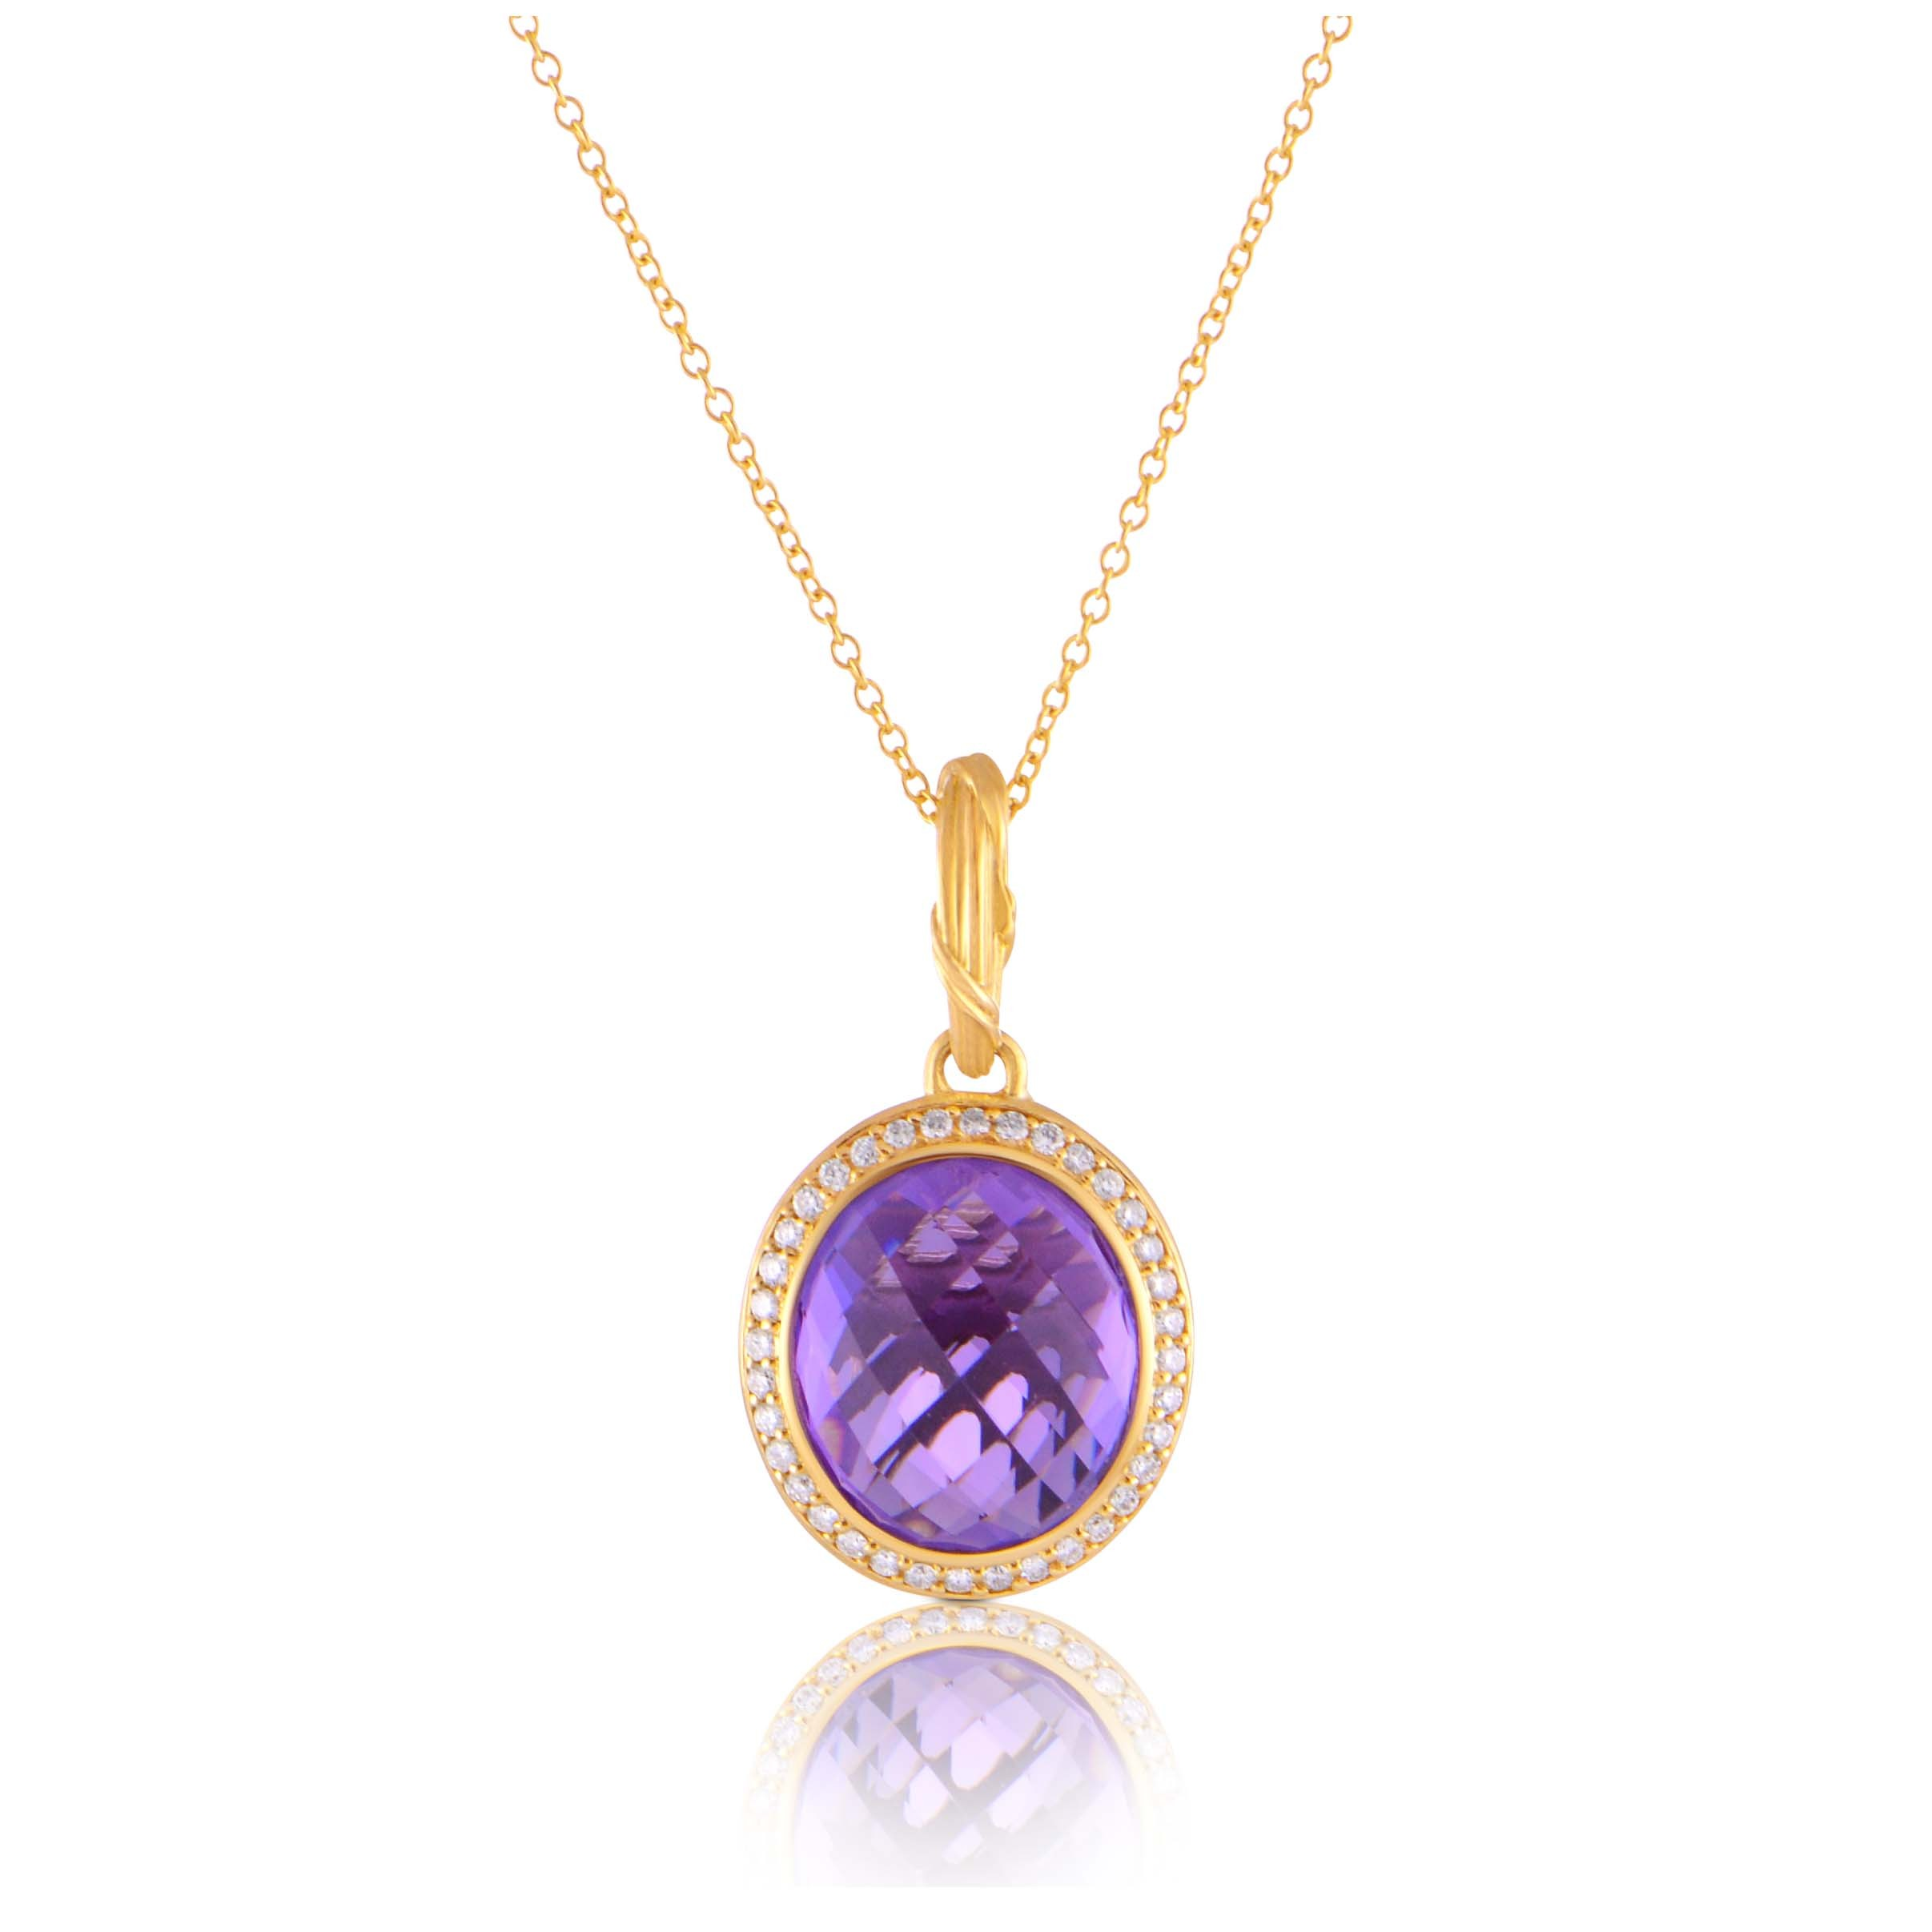 Peter thomas roth ribbon and reed fantasies amethyst halo pendant fantasies amethyst halo pendant necklace in diamonds and 18k gold mozeypictures Gallery